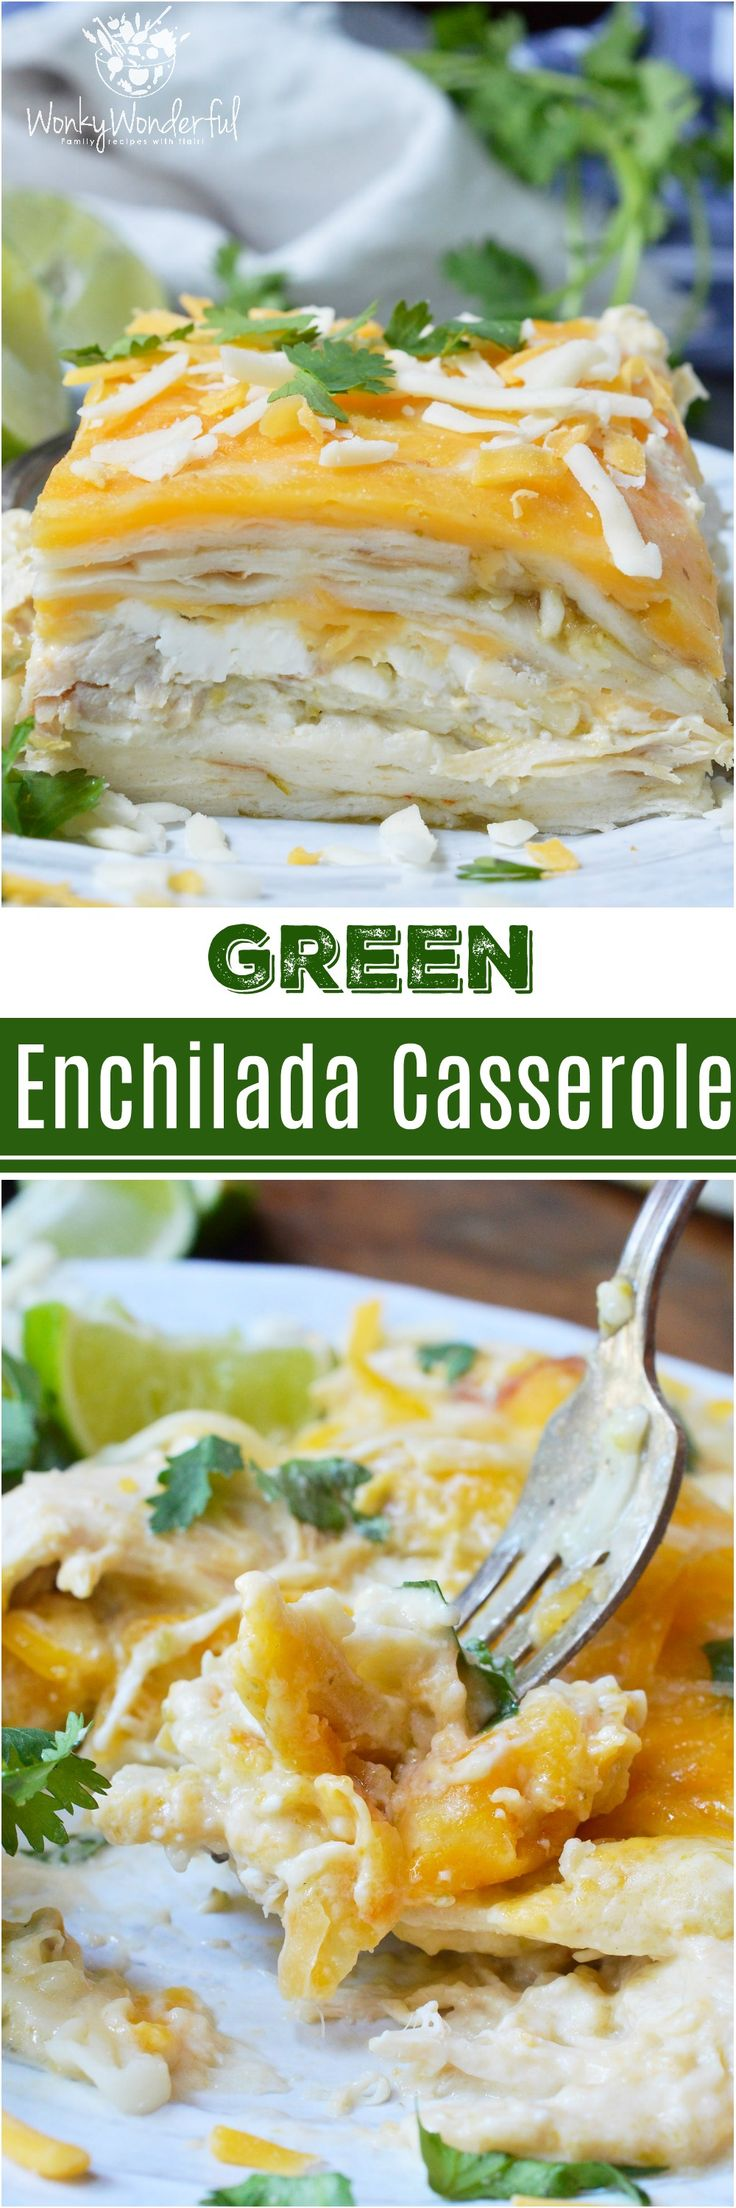 For a quick, easy and delicious dinner recipe this Green Chicken Enchilada Casserole is perfect! This Mexican meal is made with just 5 ingredients and the rotisserie chicken saves a ton of time. This is sure to be a new family favorite weeknight dinner! #ad #FarmRich @farmrichsnacks